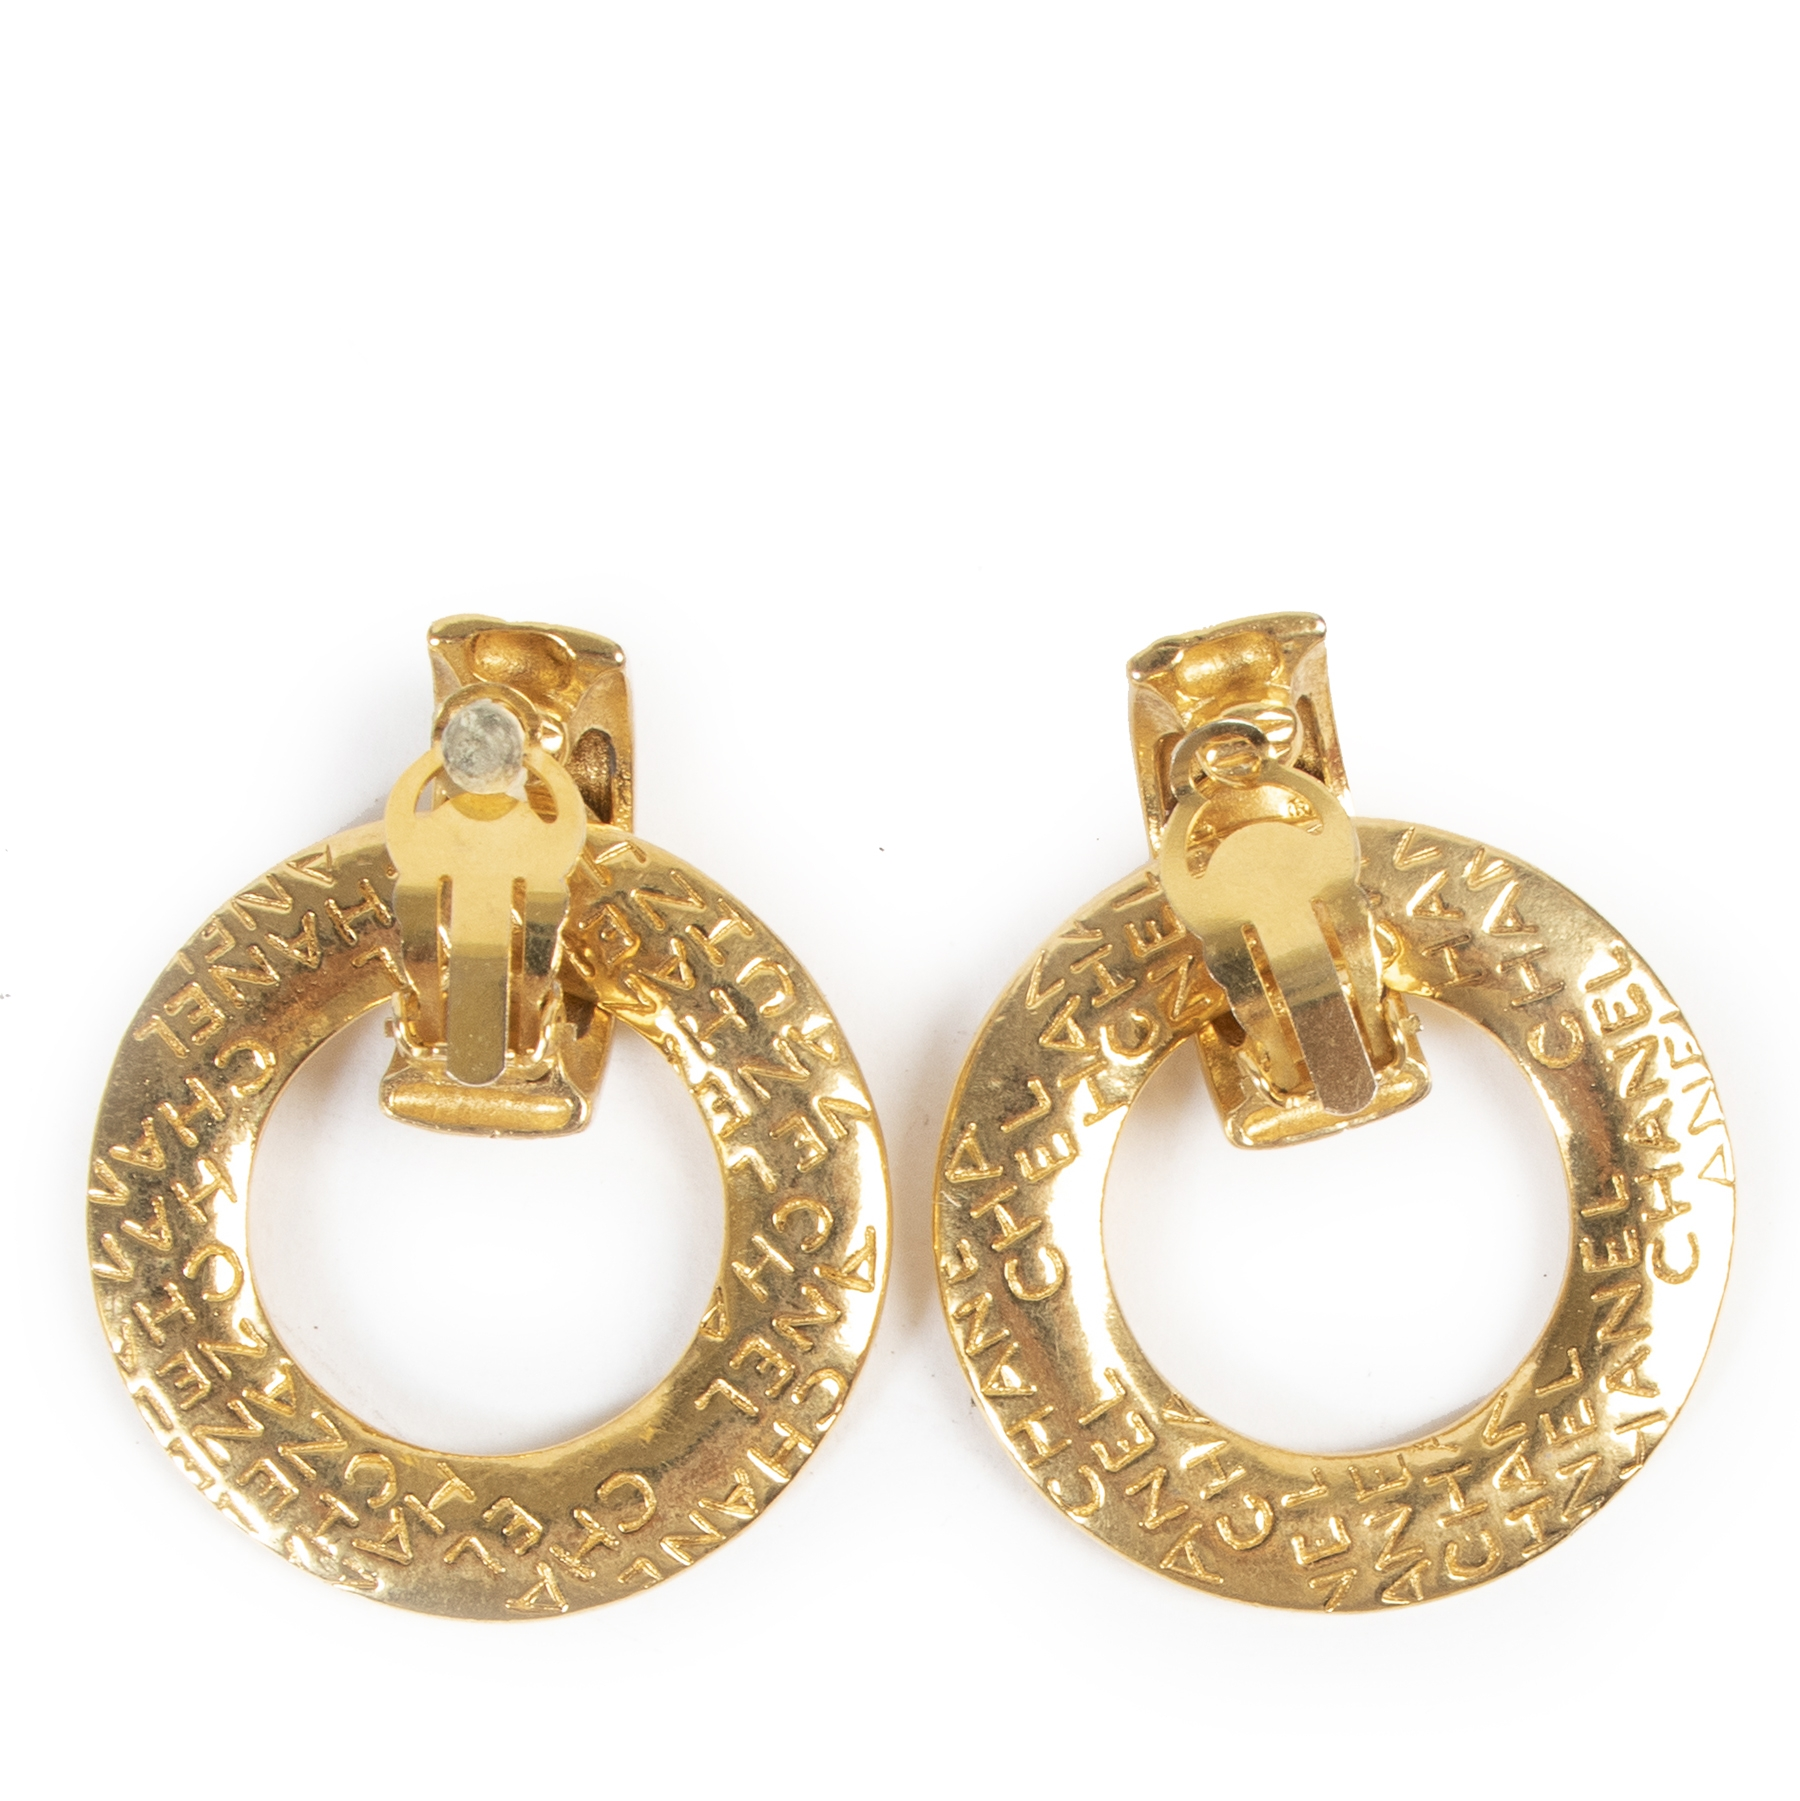 Chanel Gold Hoop Clip-on Earrings for the best price at labellov